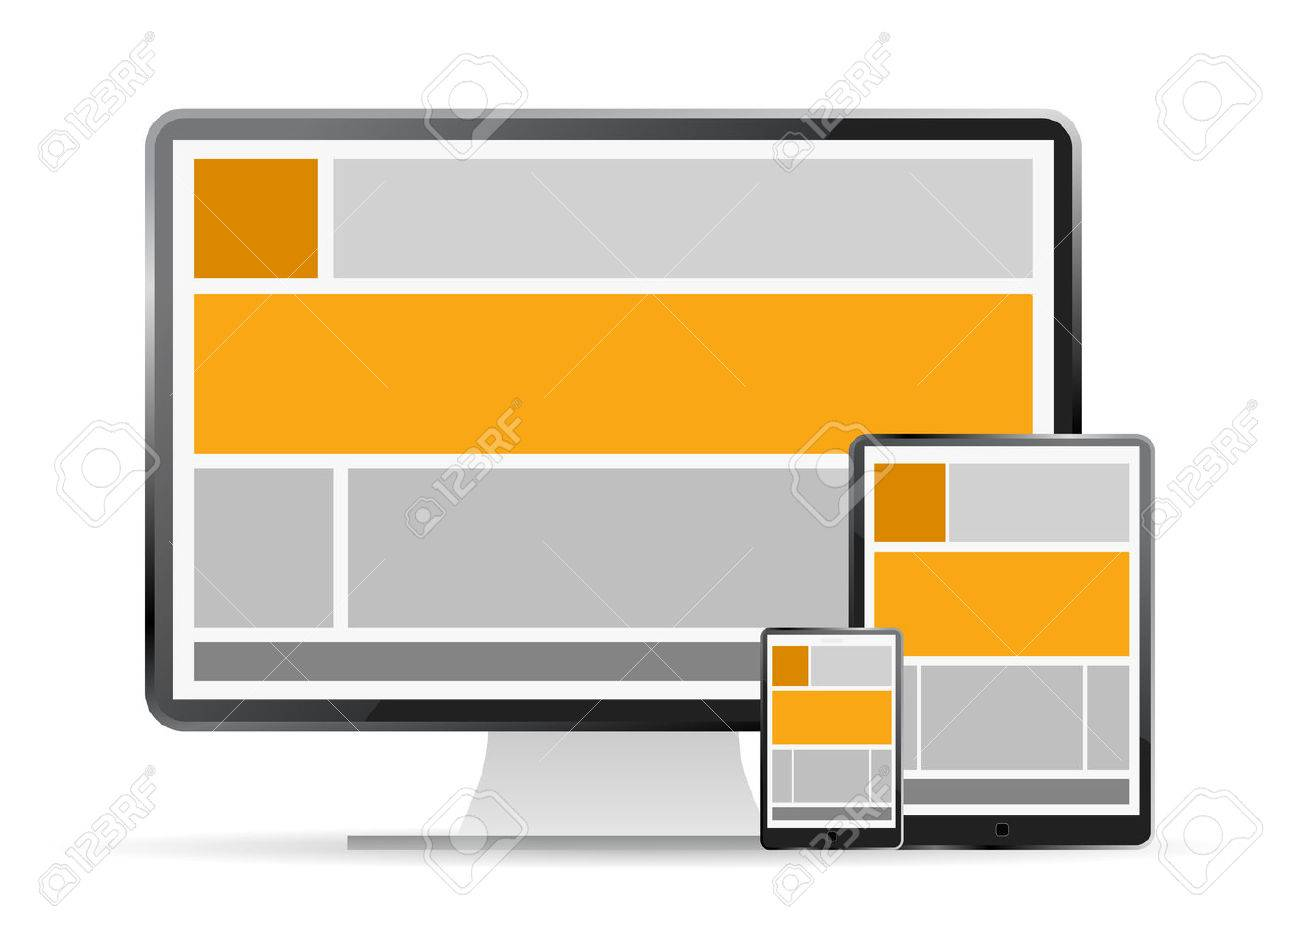 Fully responsive web design in devices Stock Vector - 24440688